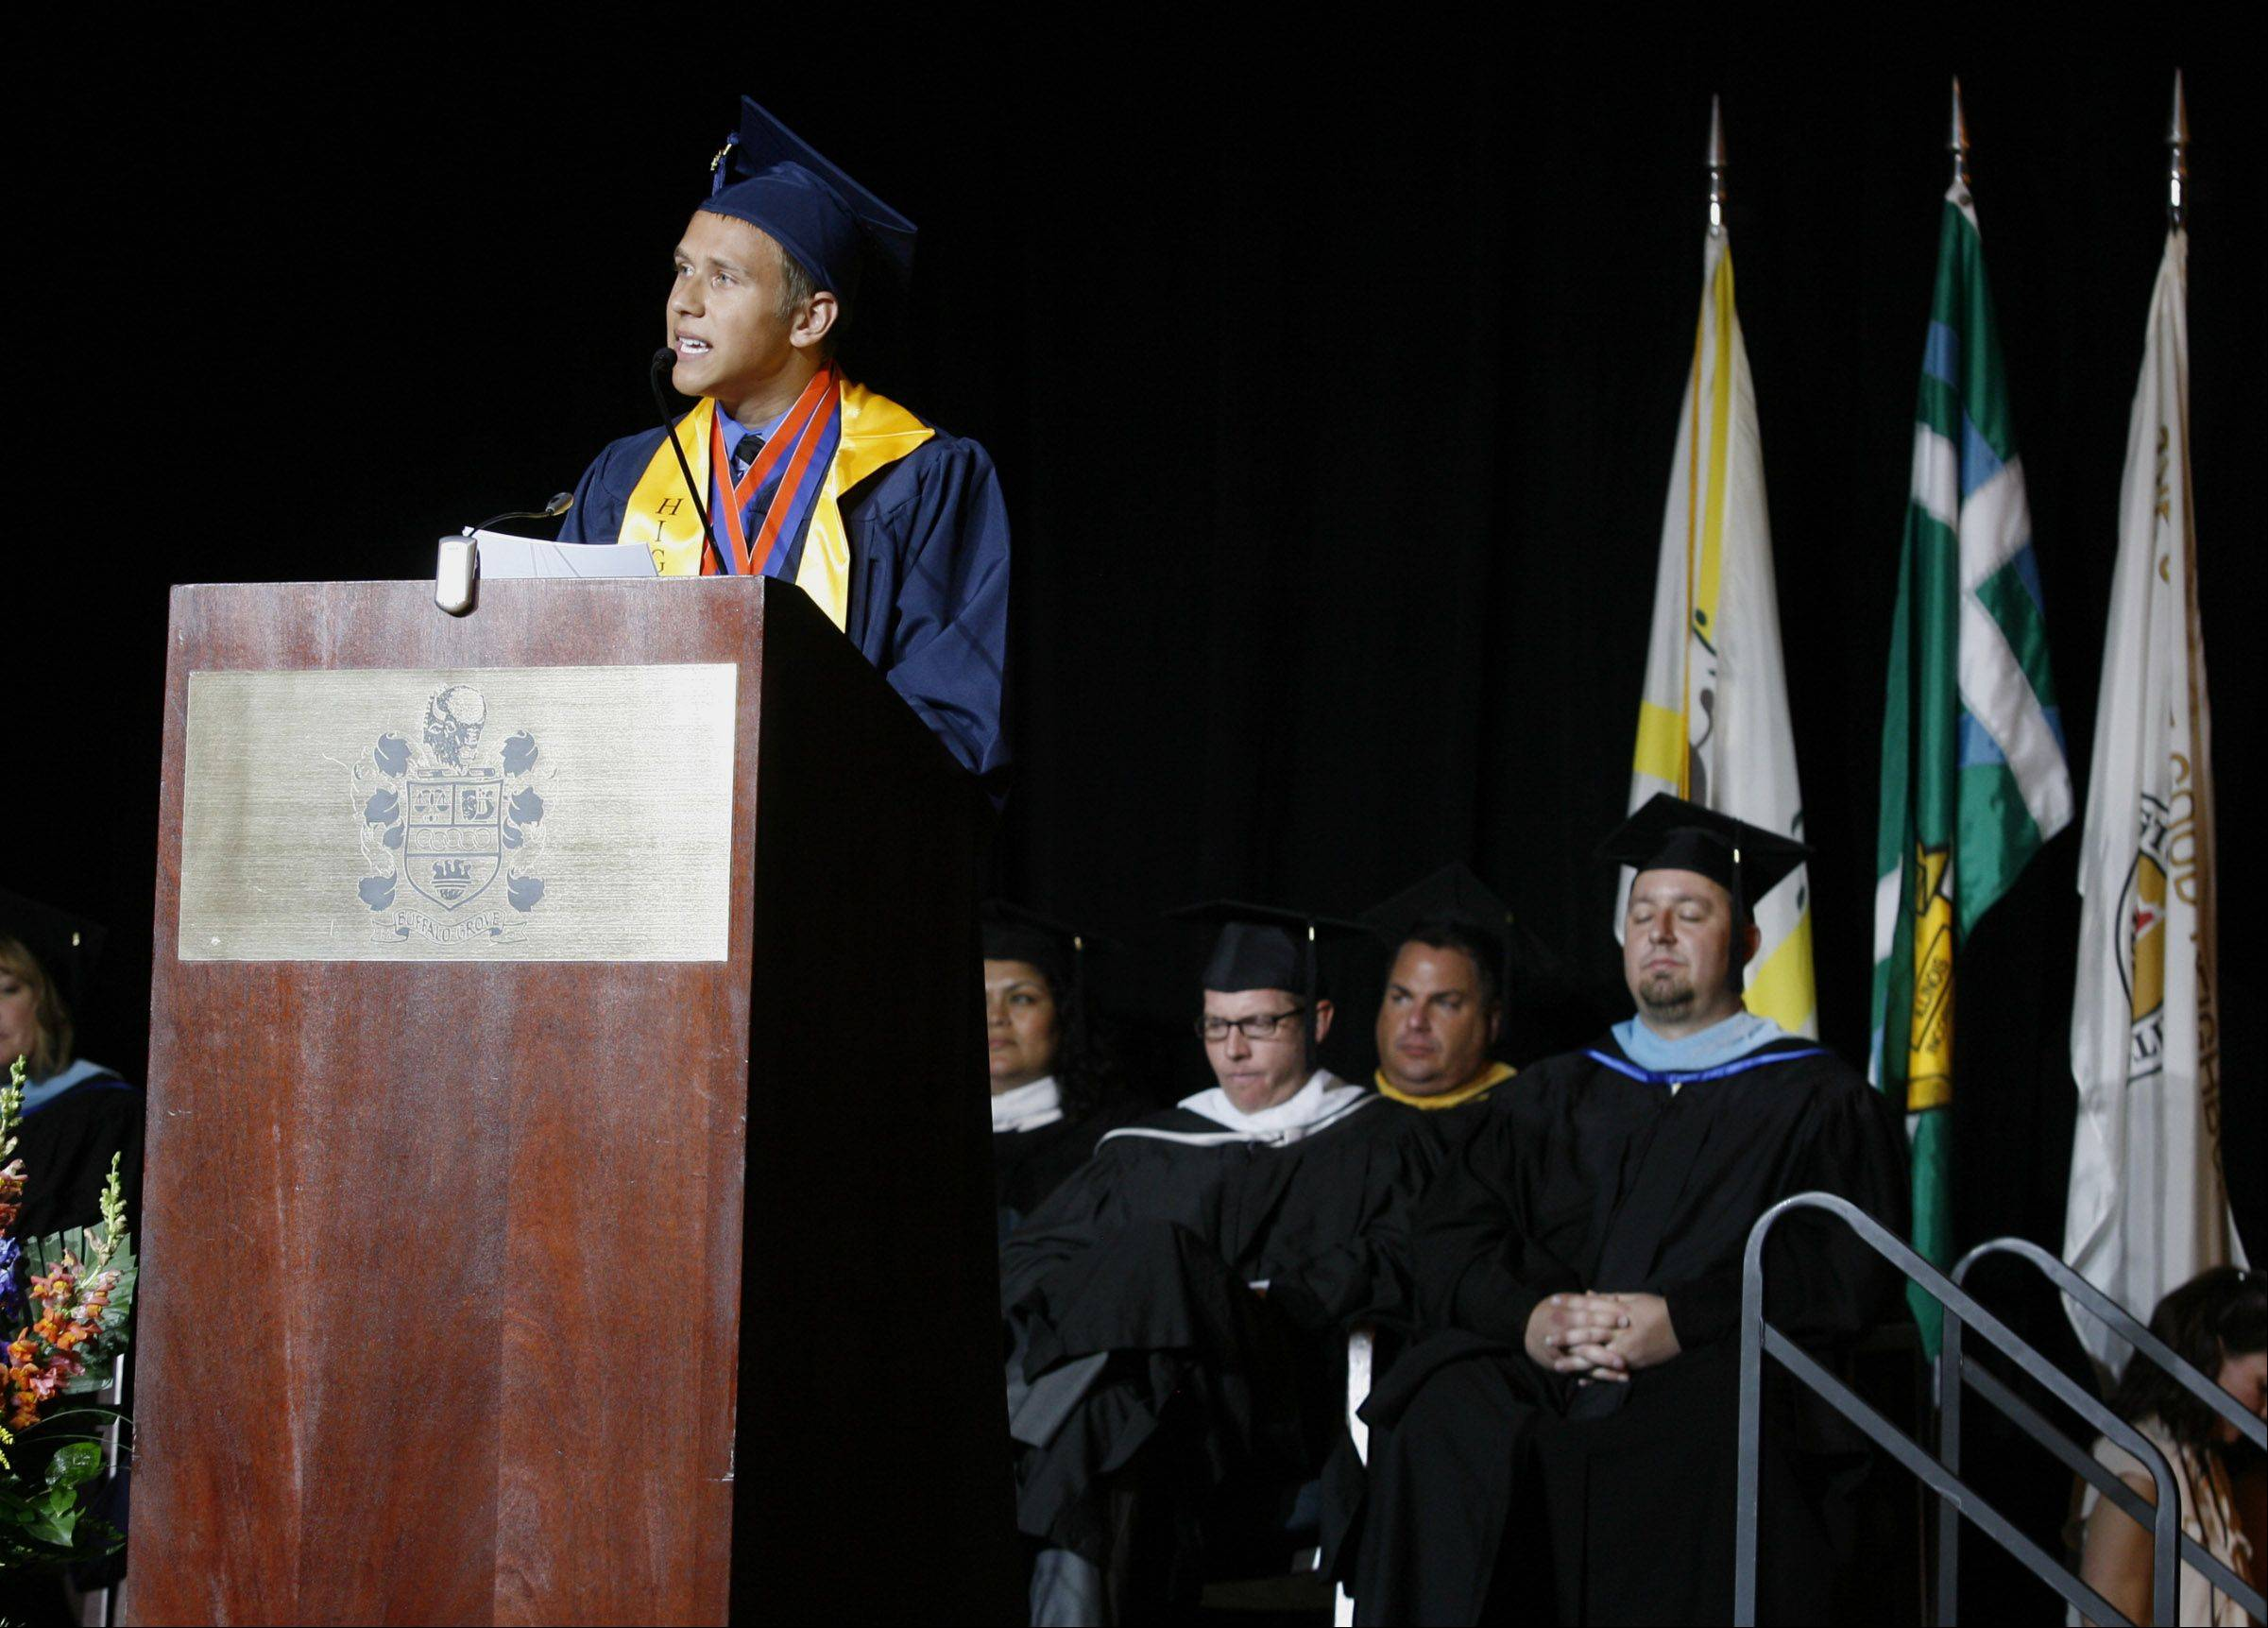 Buffalo Grove High School graduate Tyler Nelson speaks at the school's graduation ceremony in Buffalo Grove Sunday.